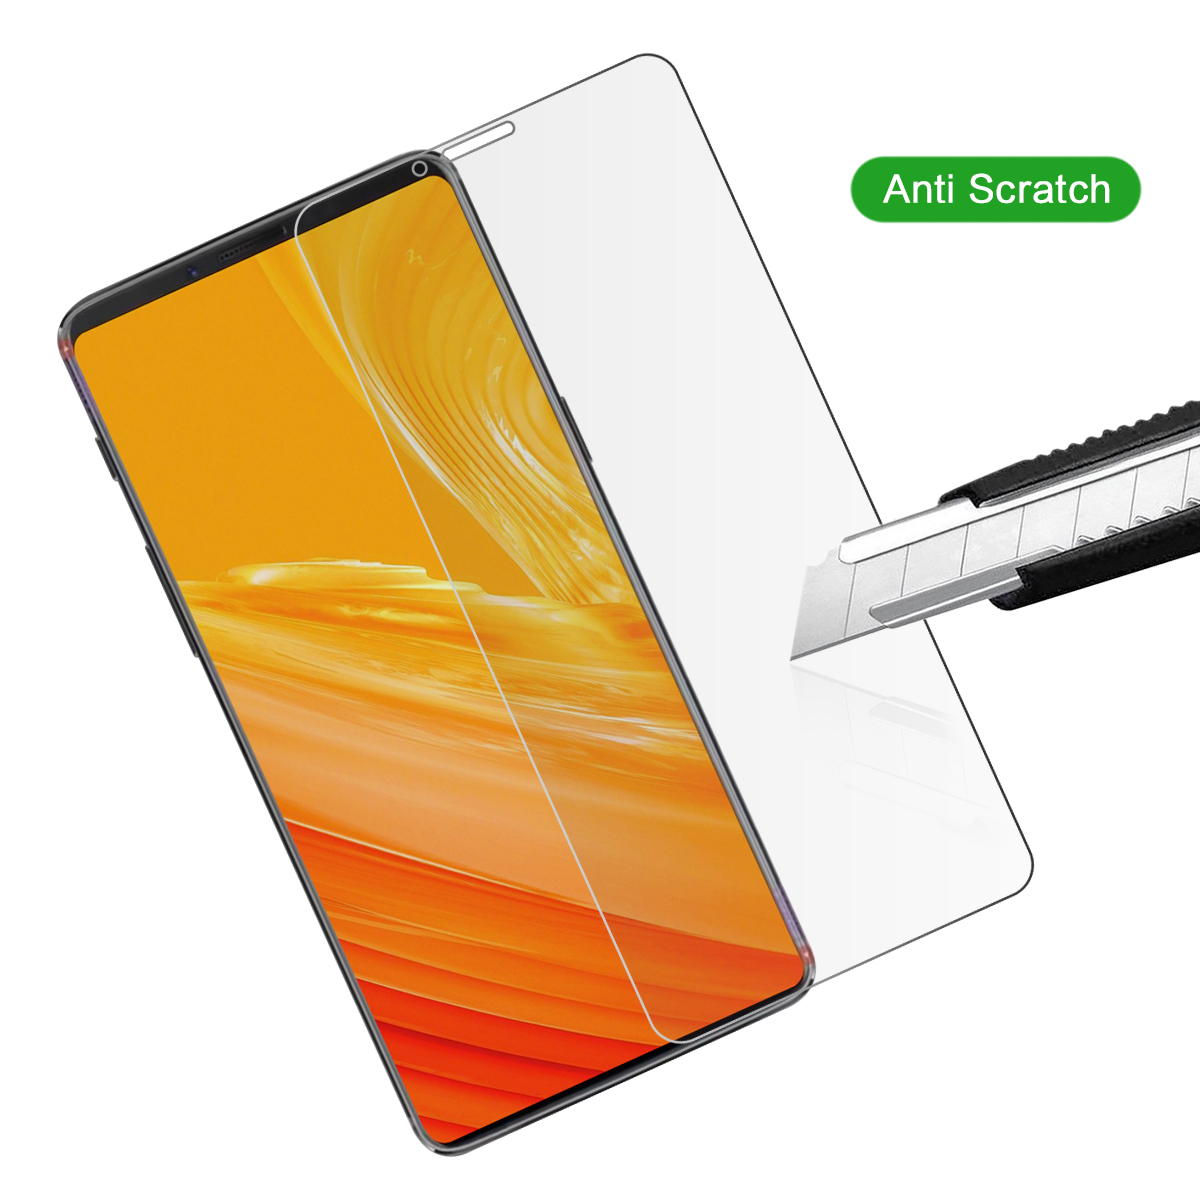 2 Pack Tempered Glass For OnePlus 6T Phone Screen Protector Anti-Scratch Screen Cover for OnePlus 6T Tempered Glass